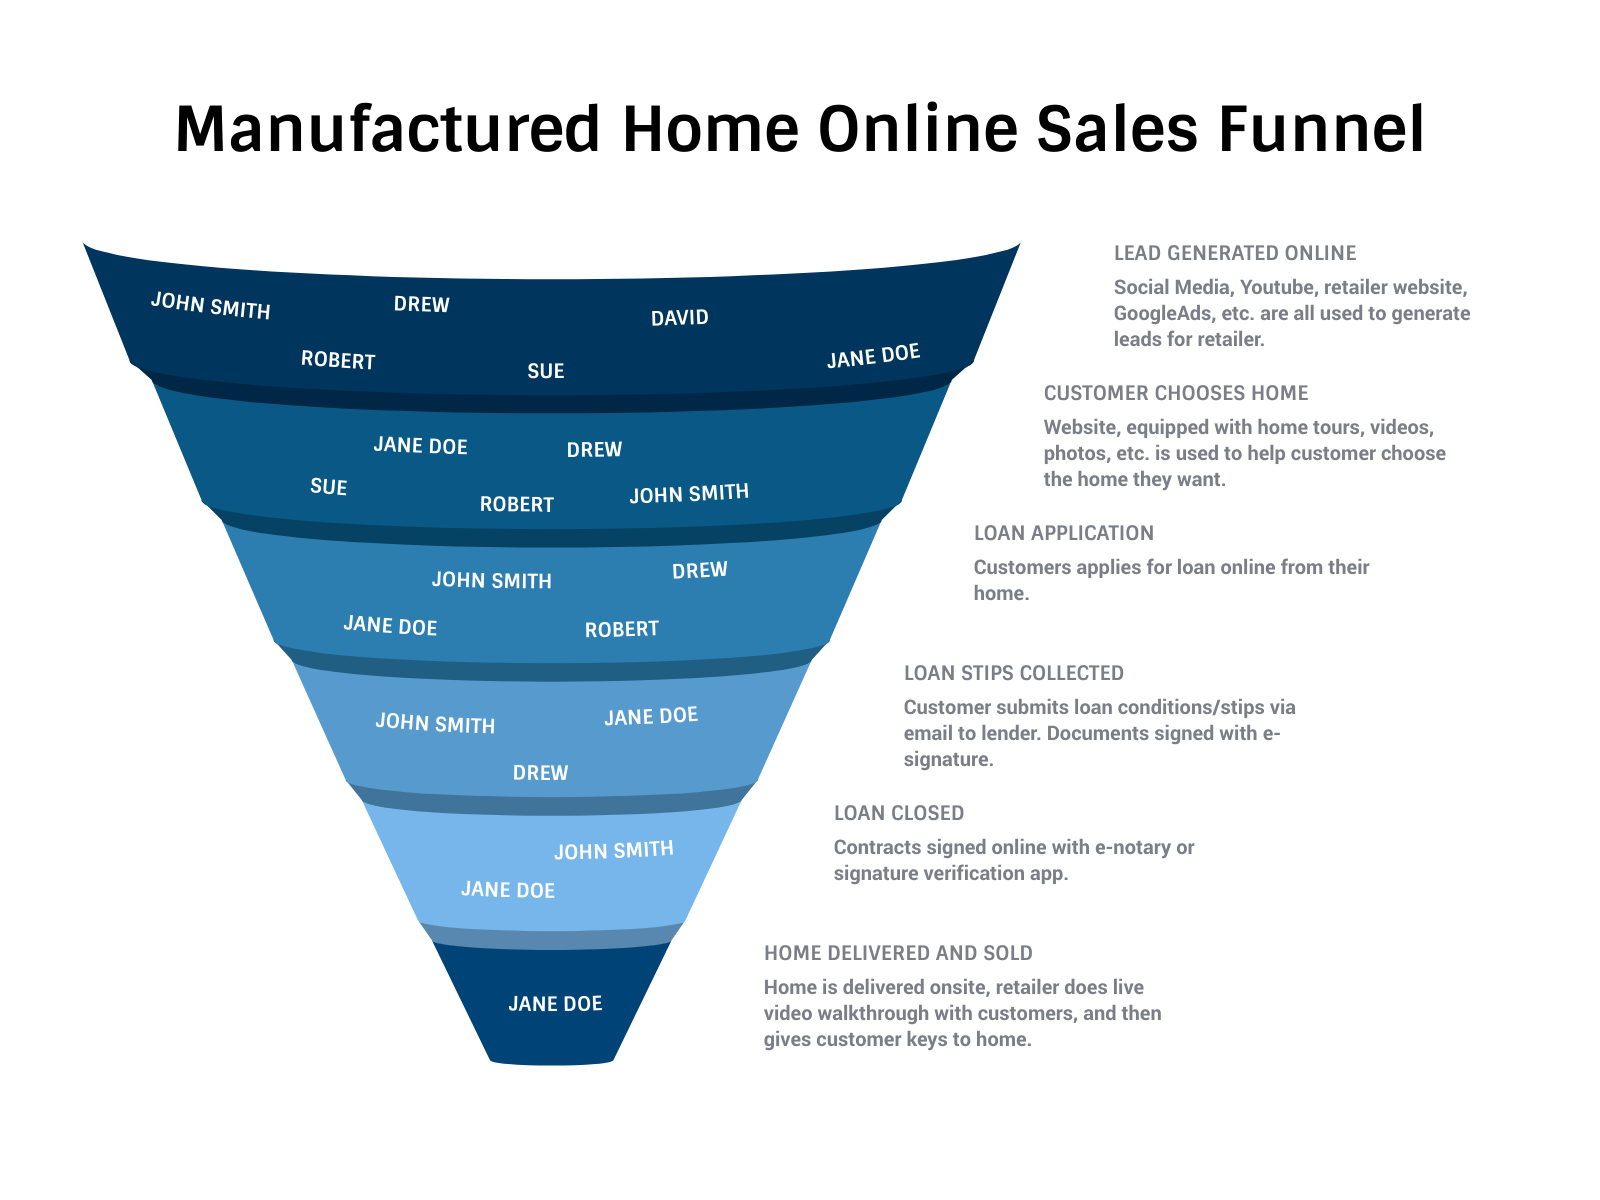 Mobile Home Dealer Digital marketing funnel